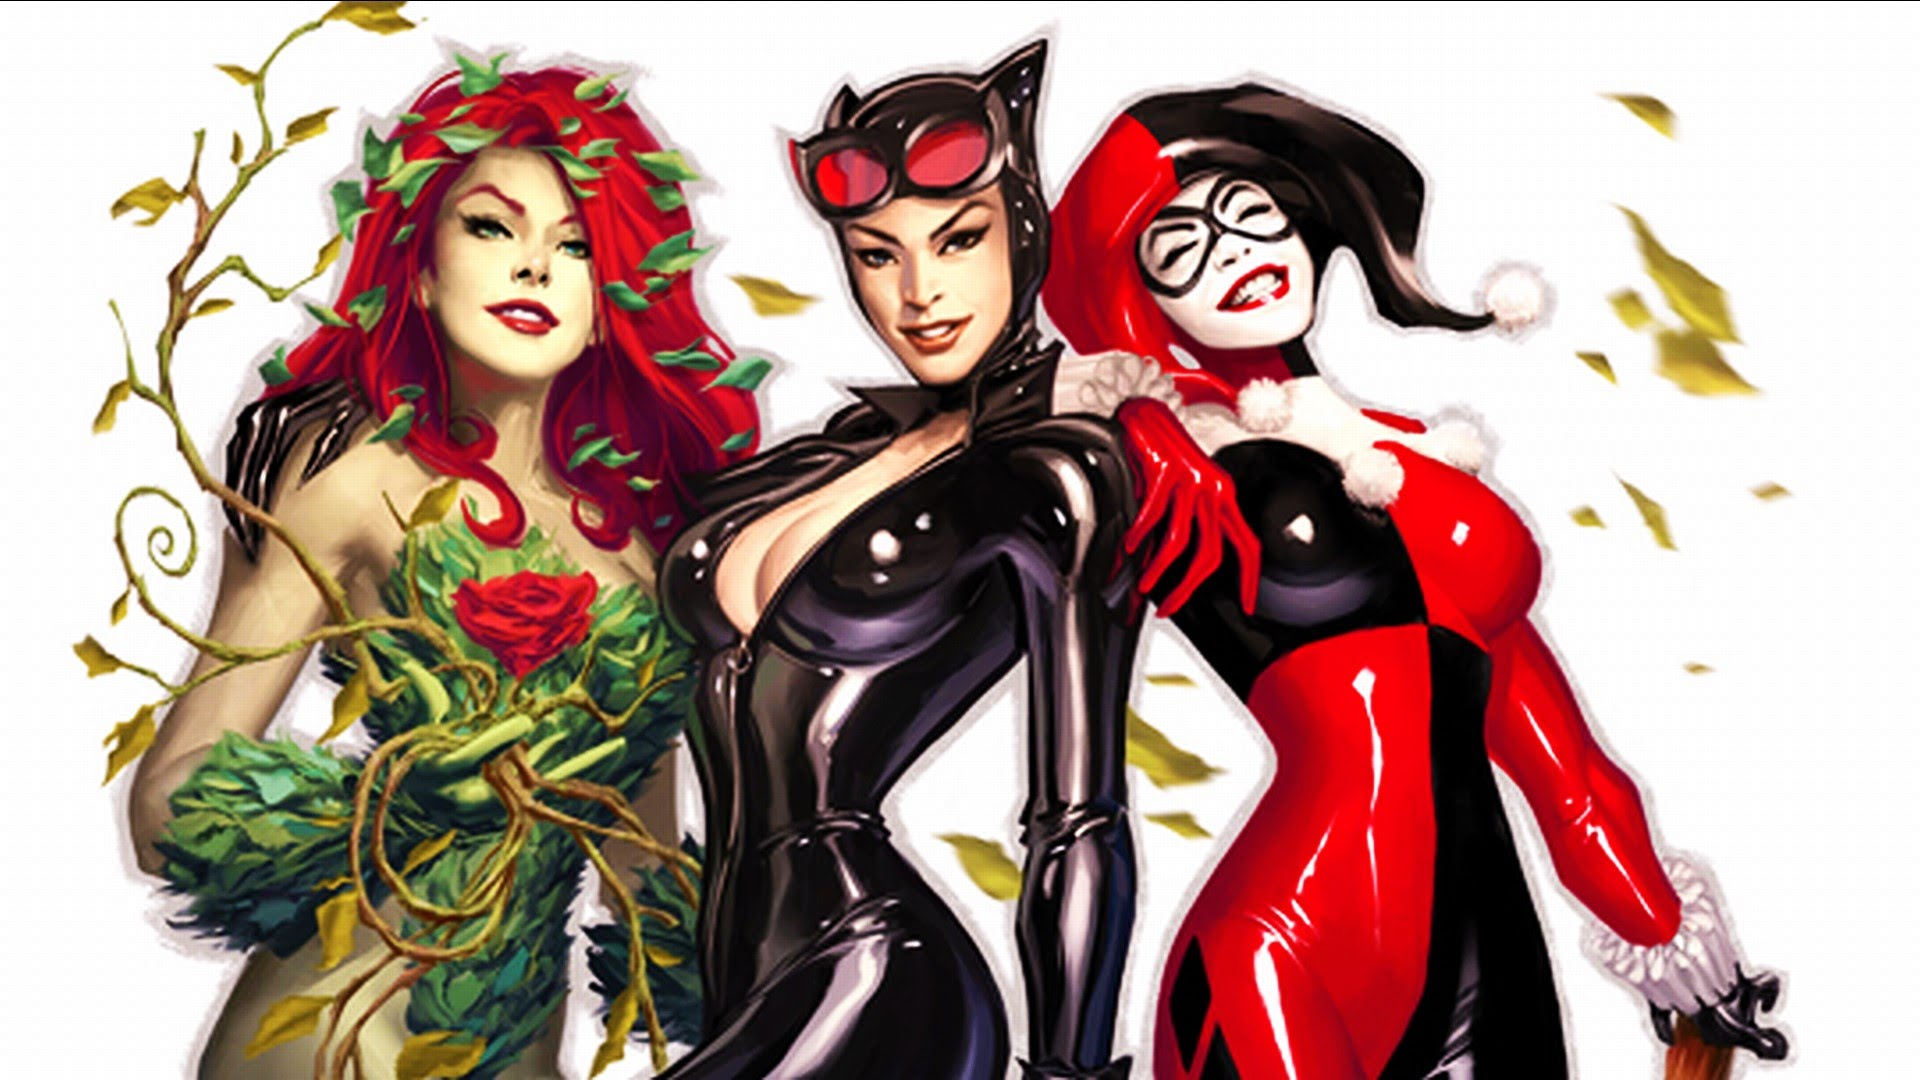 A Huge DC Super-Villain Almost Confirmed For Gotham City Sirens